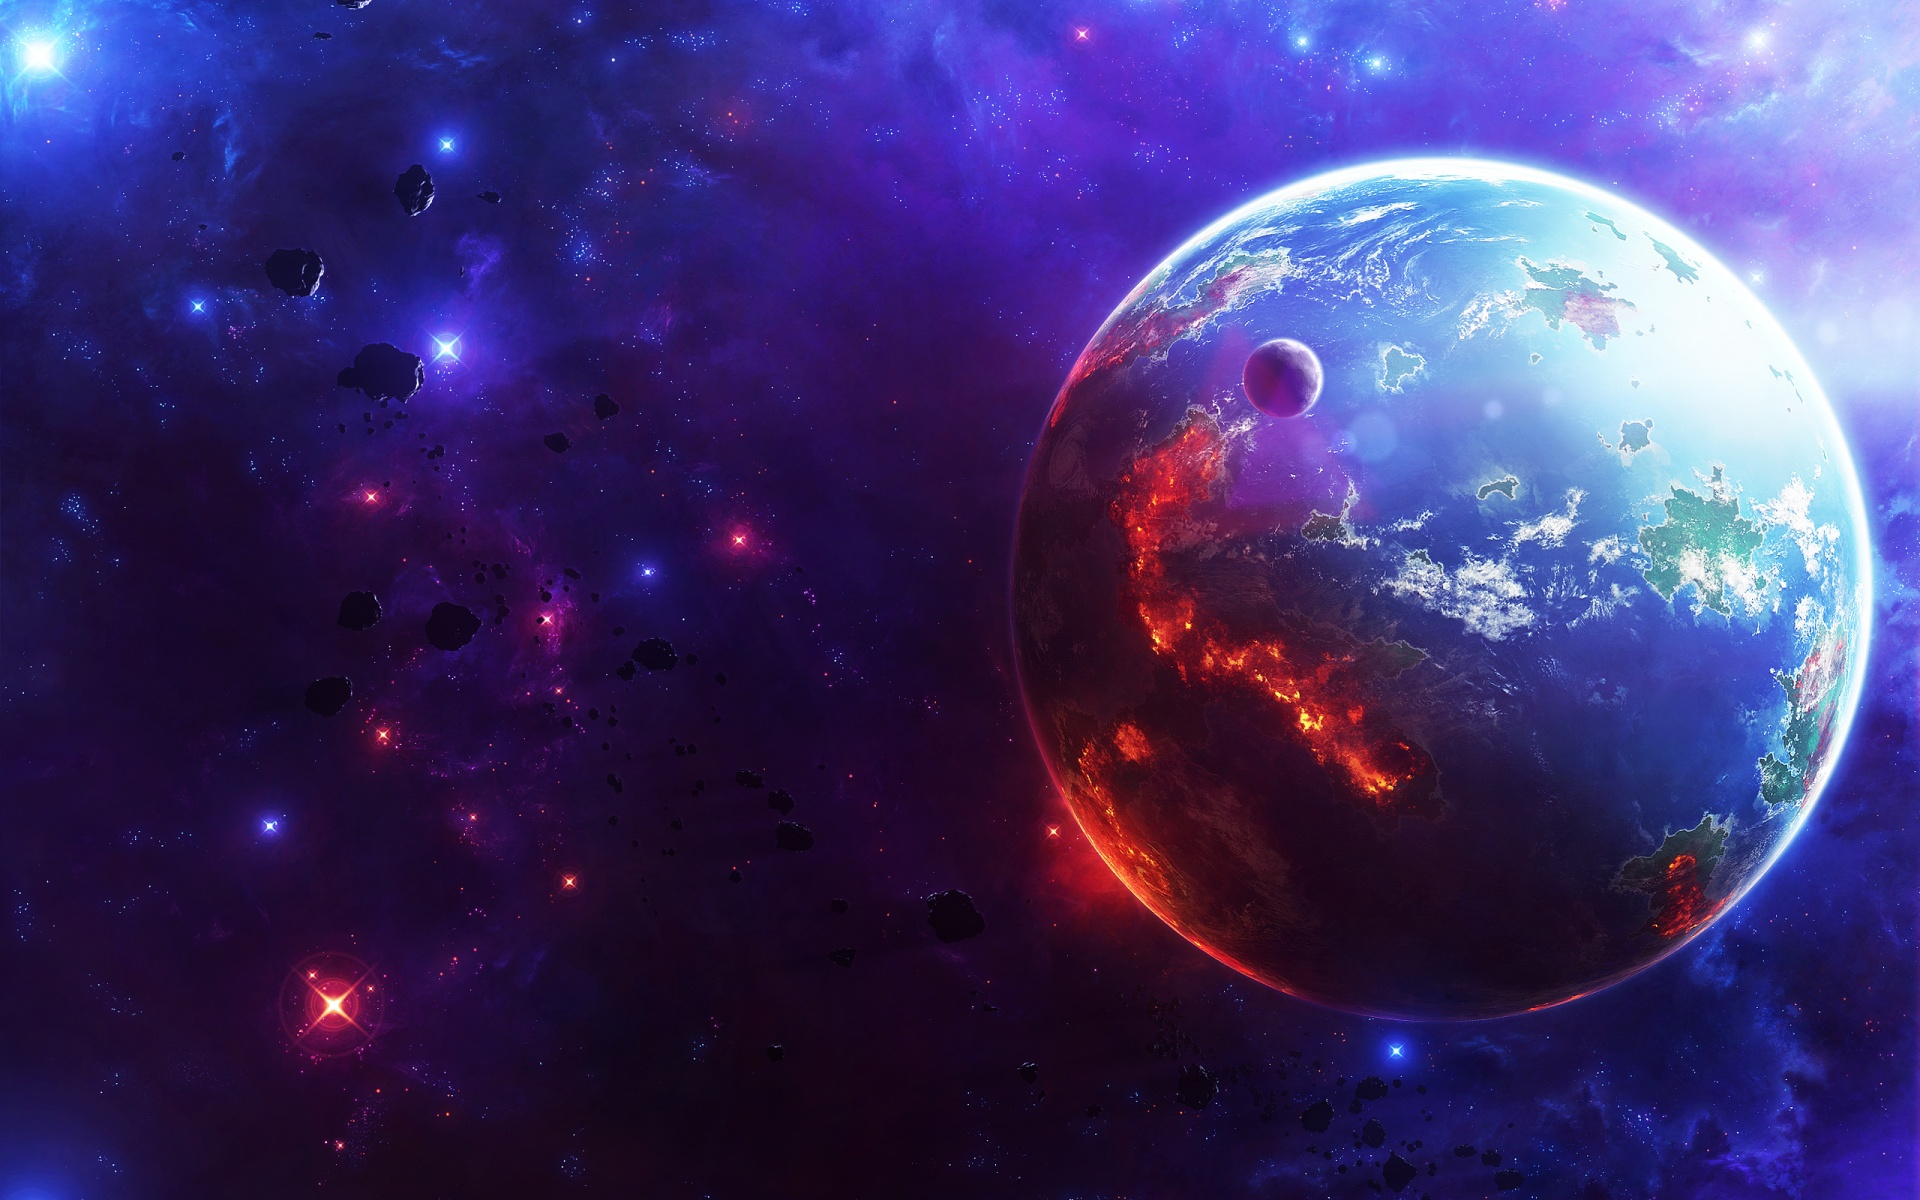 planet space hd wallpapers 1080p - photo #43